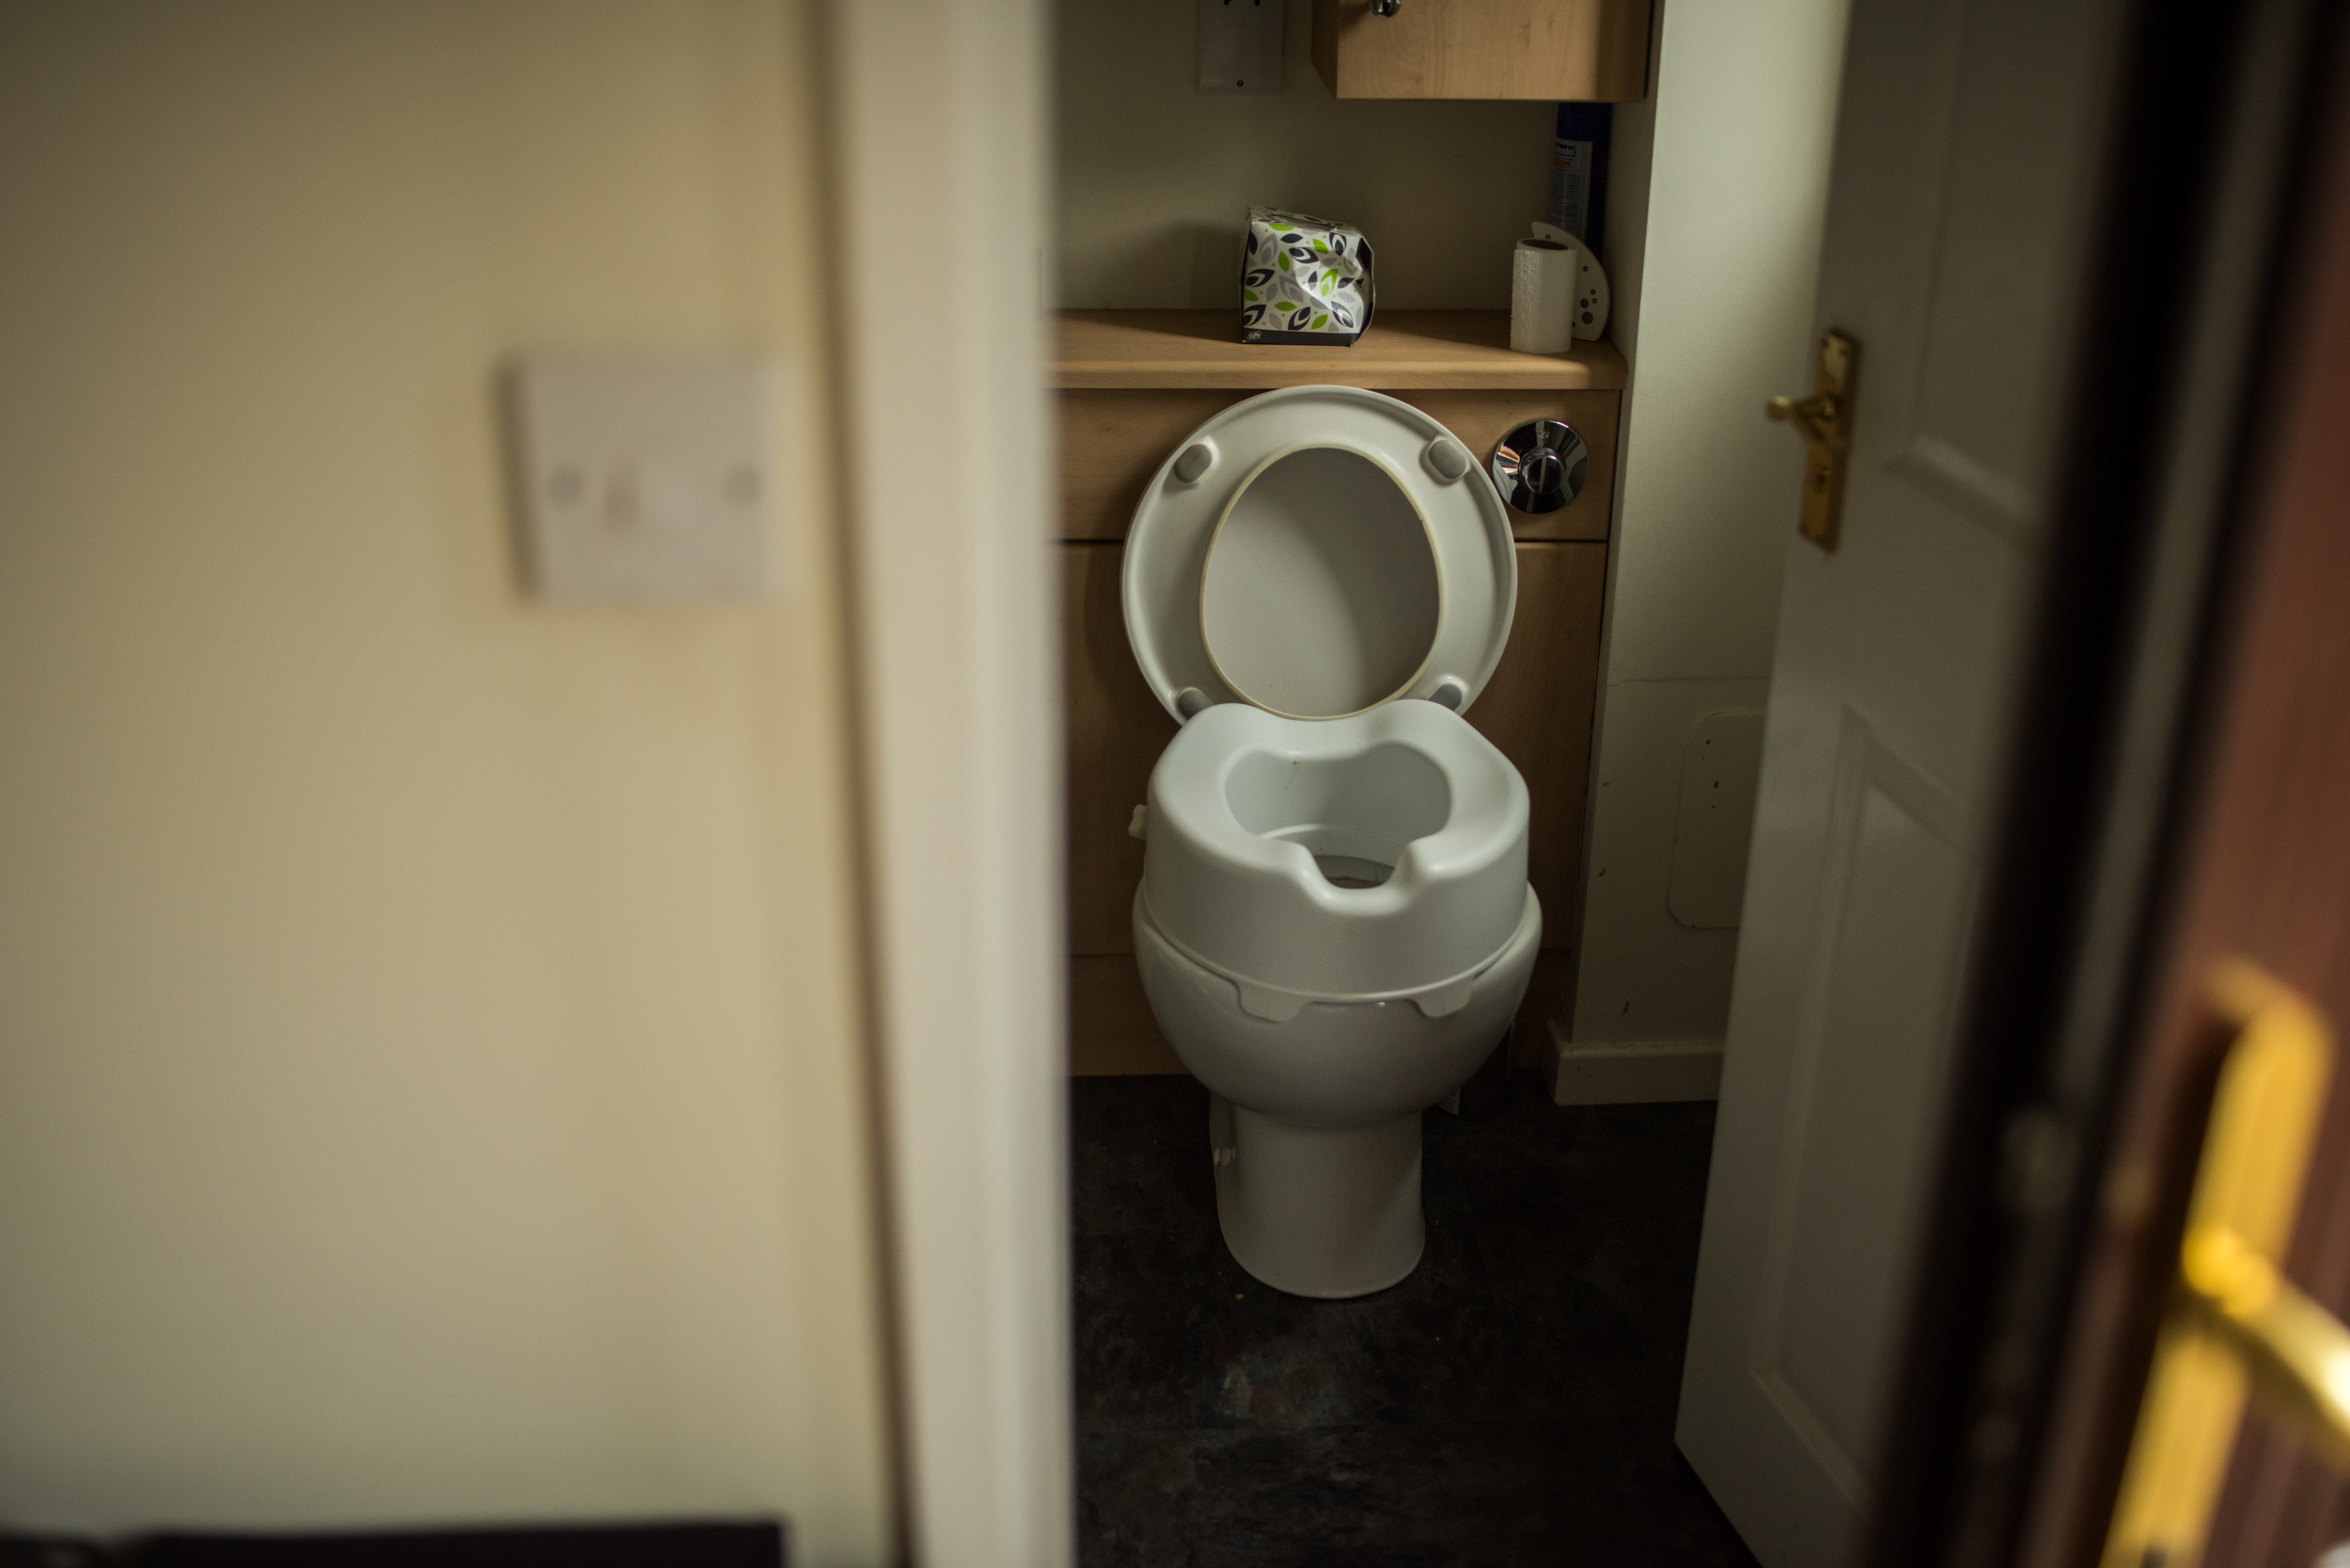 A special toilet seat